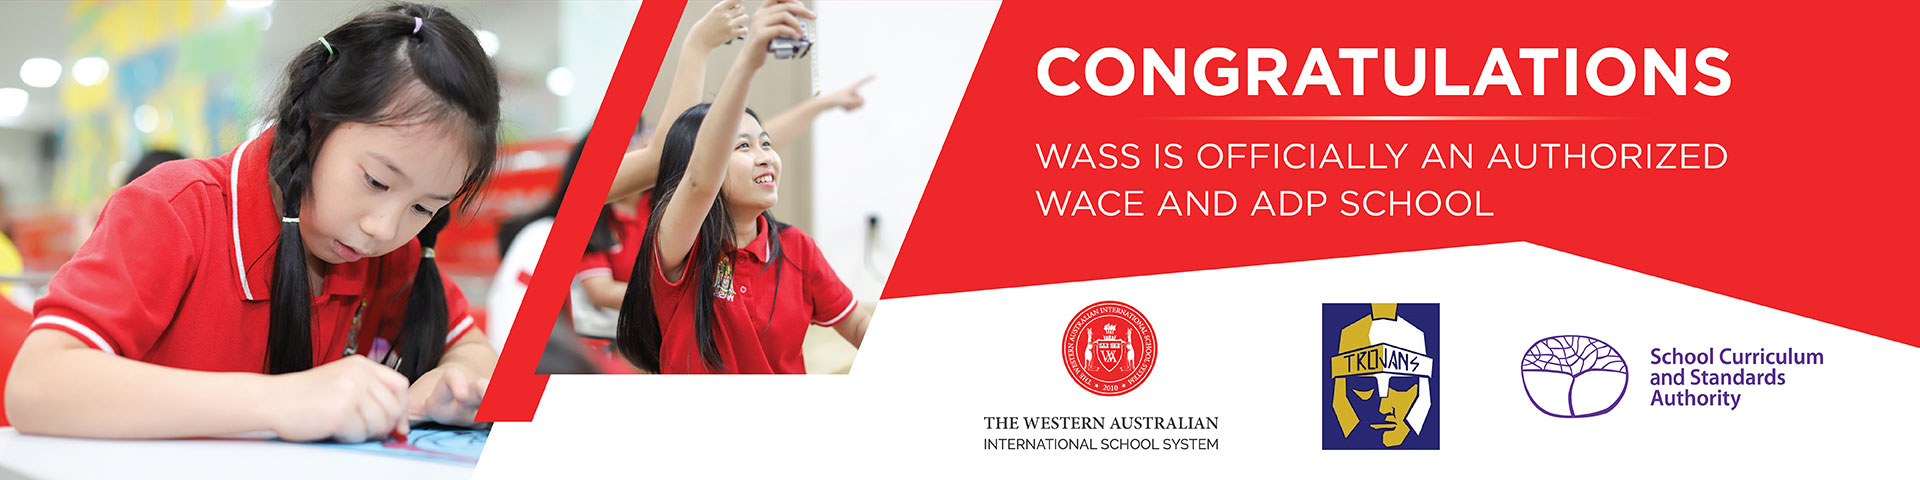 WASS is official an authorized WACE and ADP School